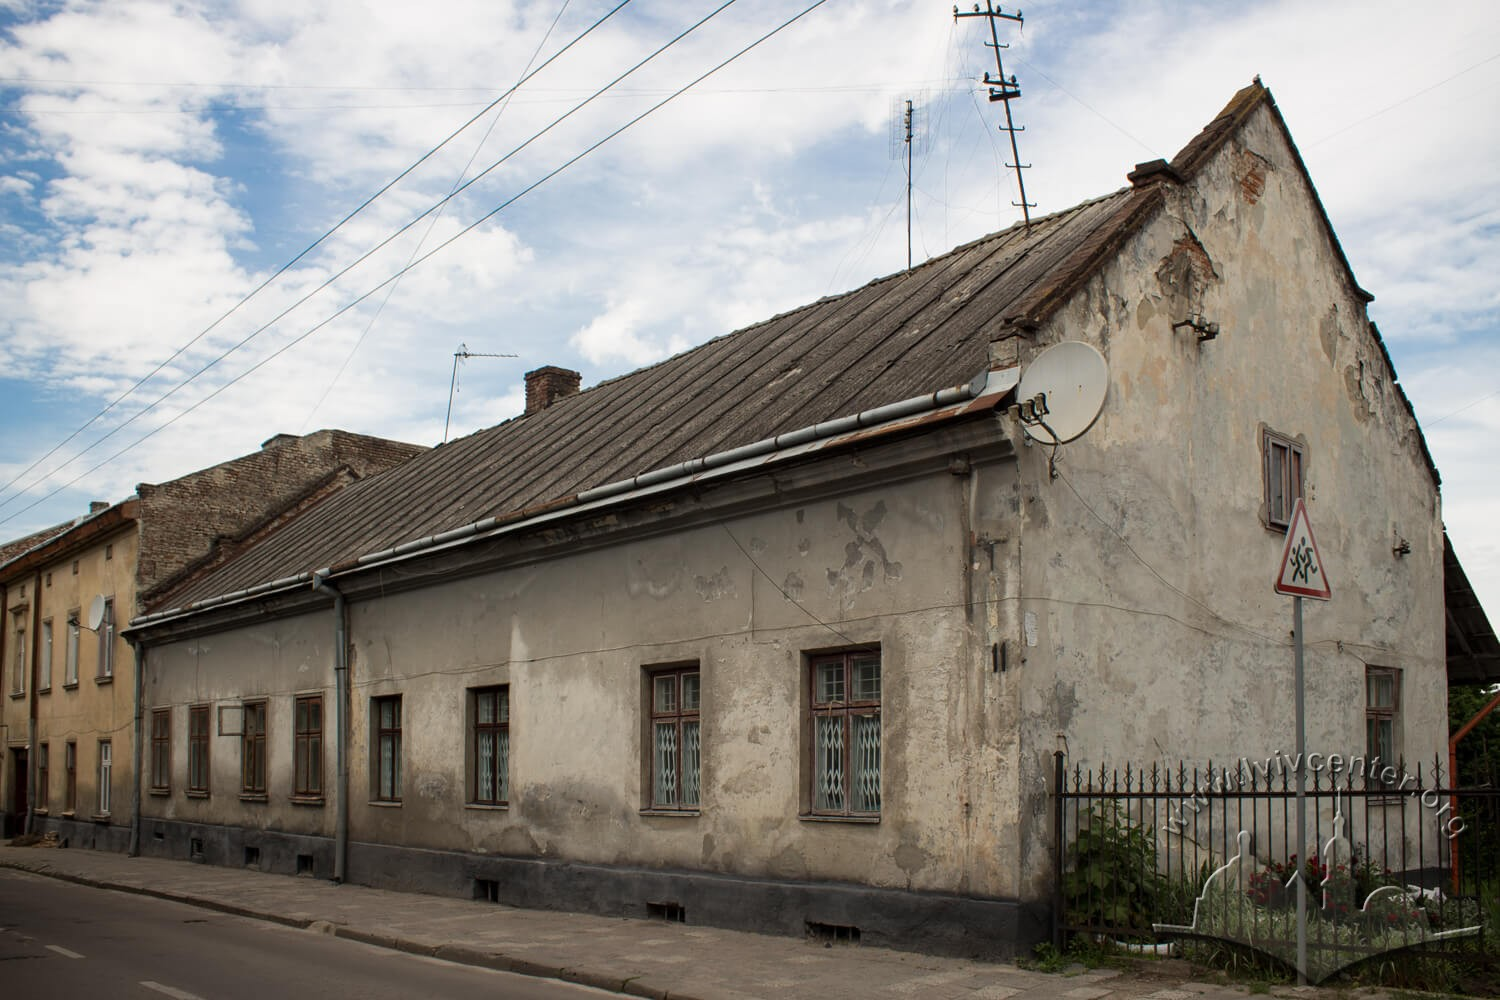 Vul. Donetska, 11. Former residential building of German Schneider family who owned a big vegetable farm in Pidzamche in 19th century/Авторка фото – Ольга Заречнюк, 2016